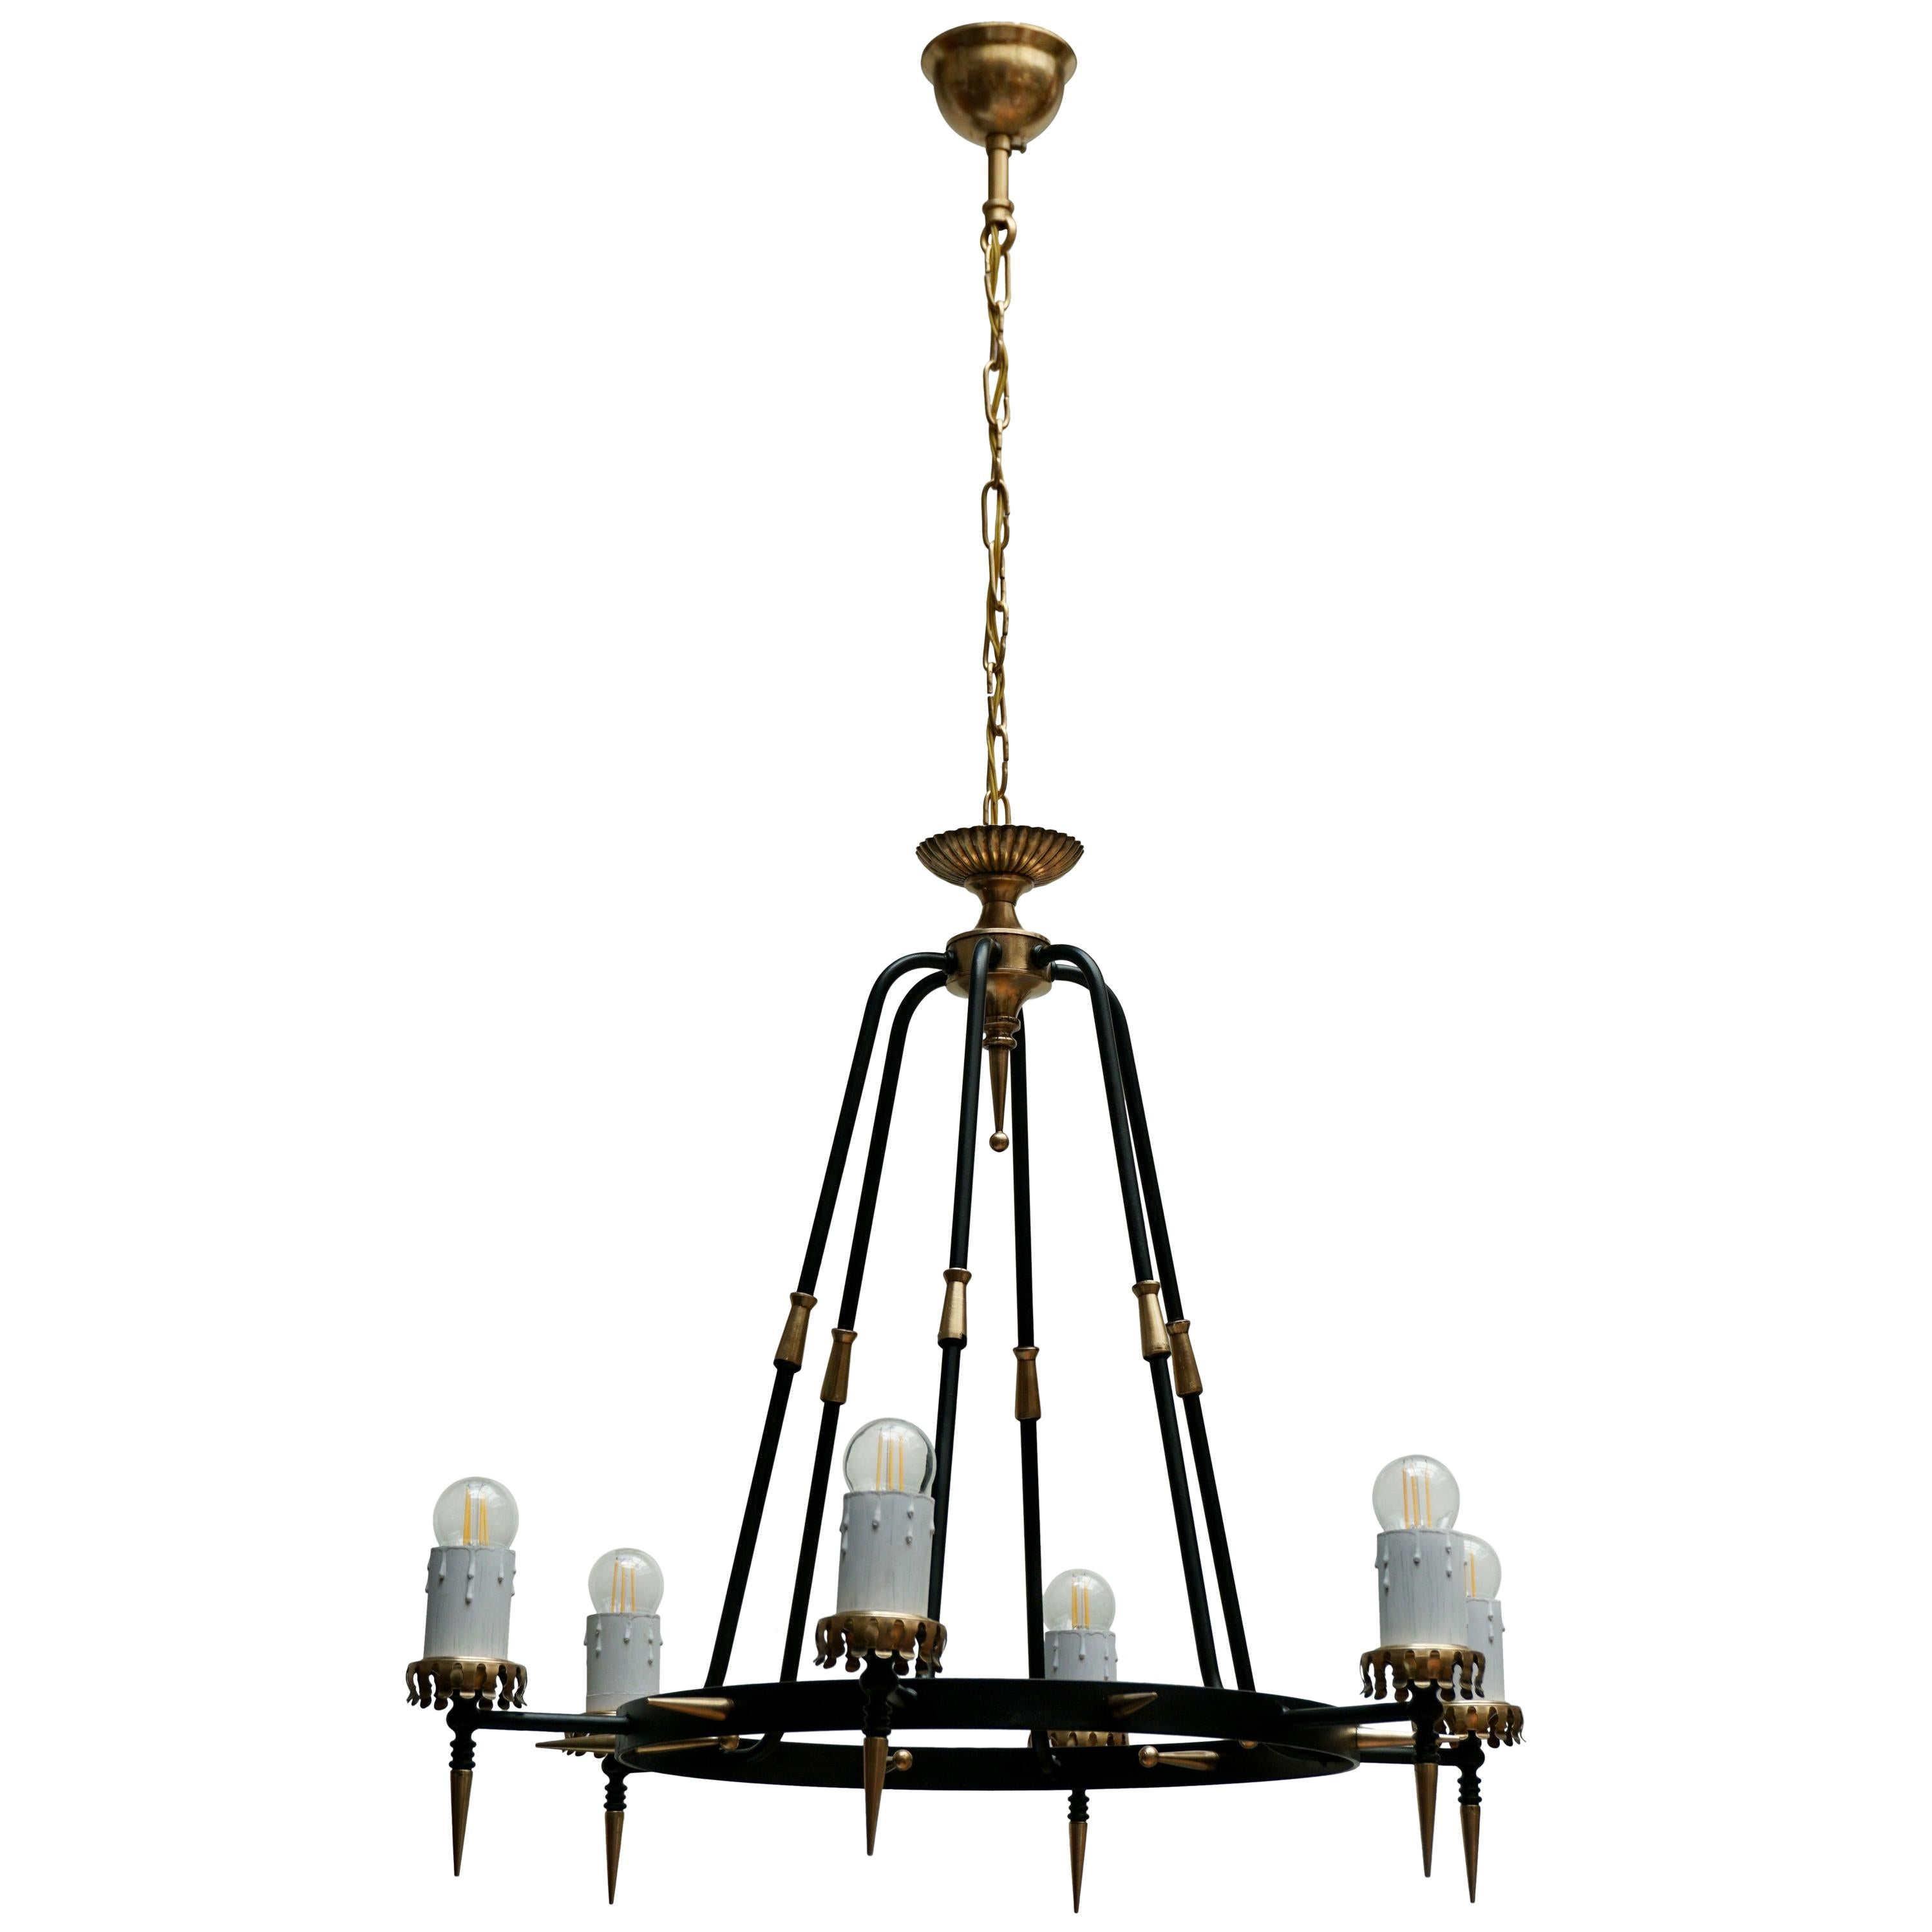 1950s Chandelier in Brass and Black Metal